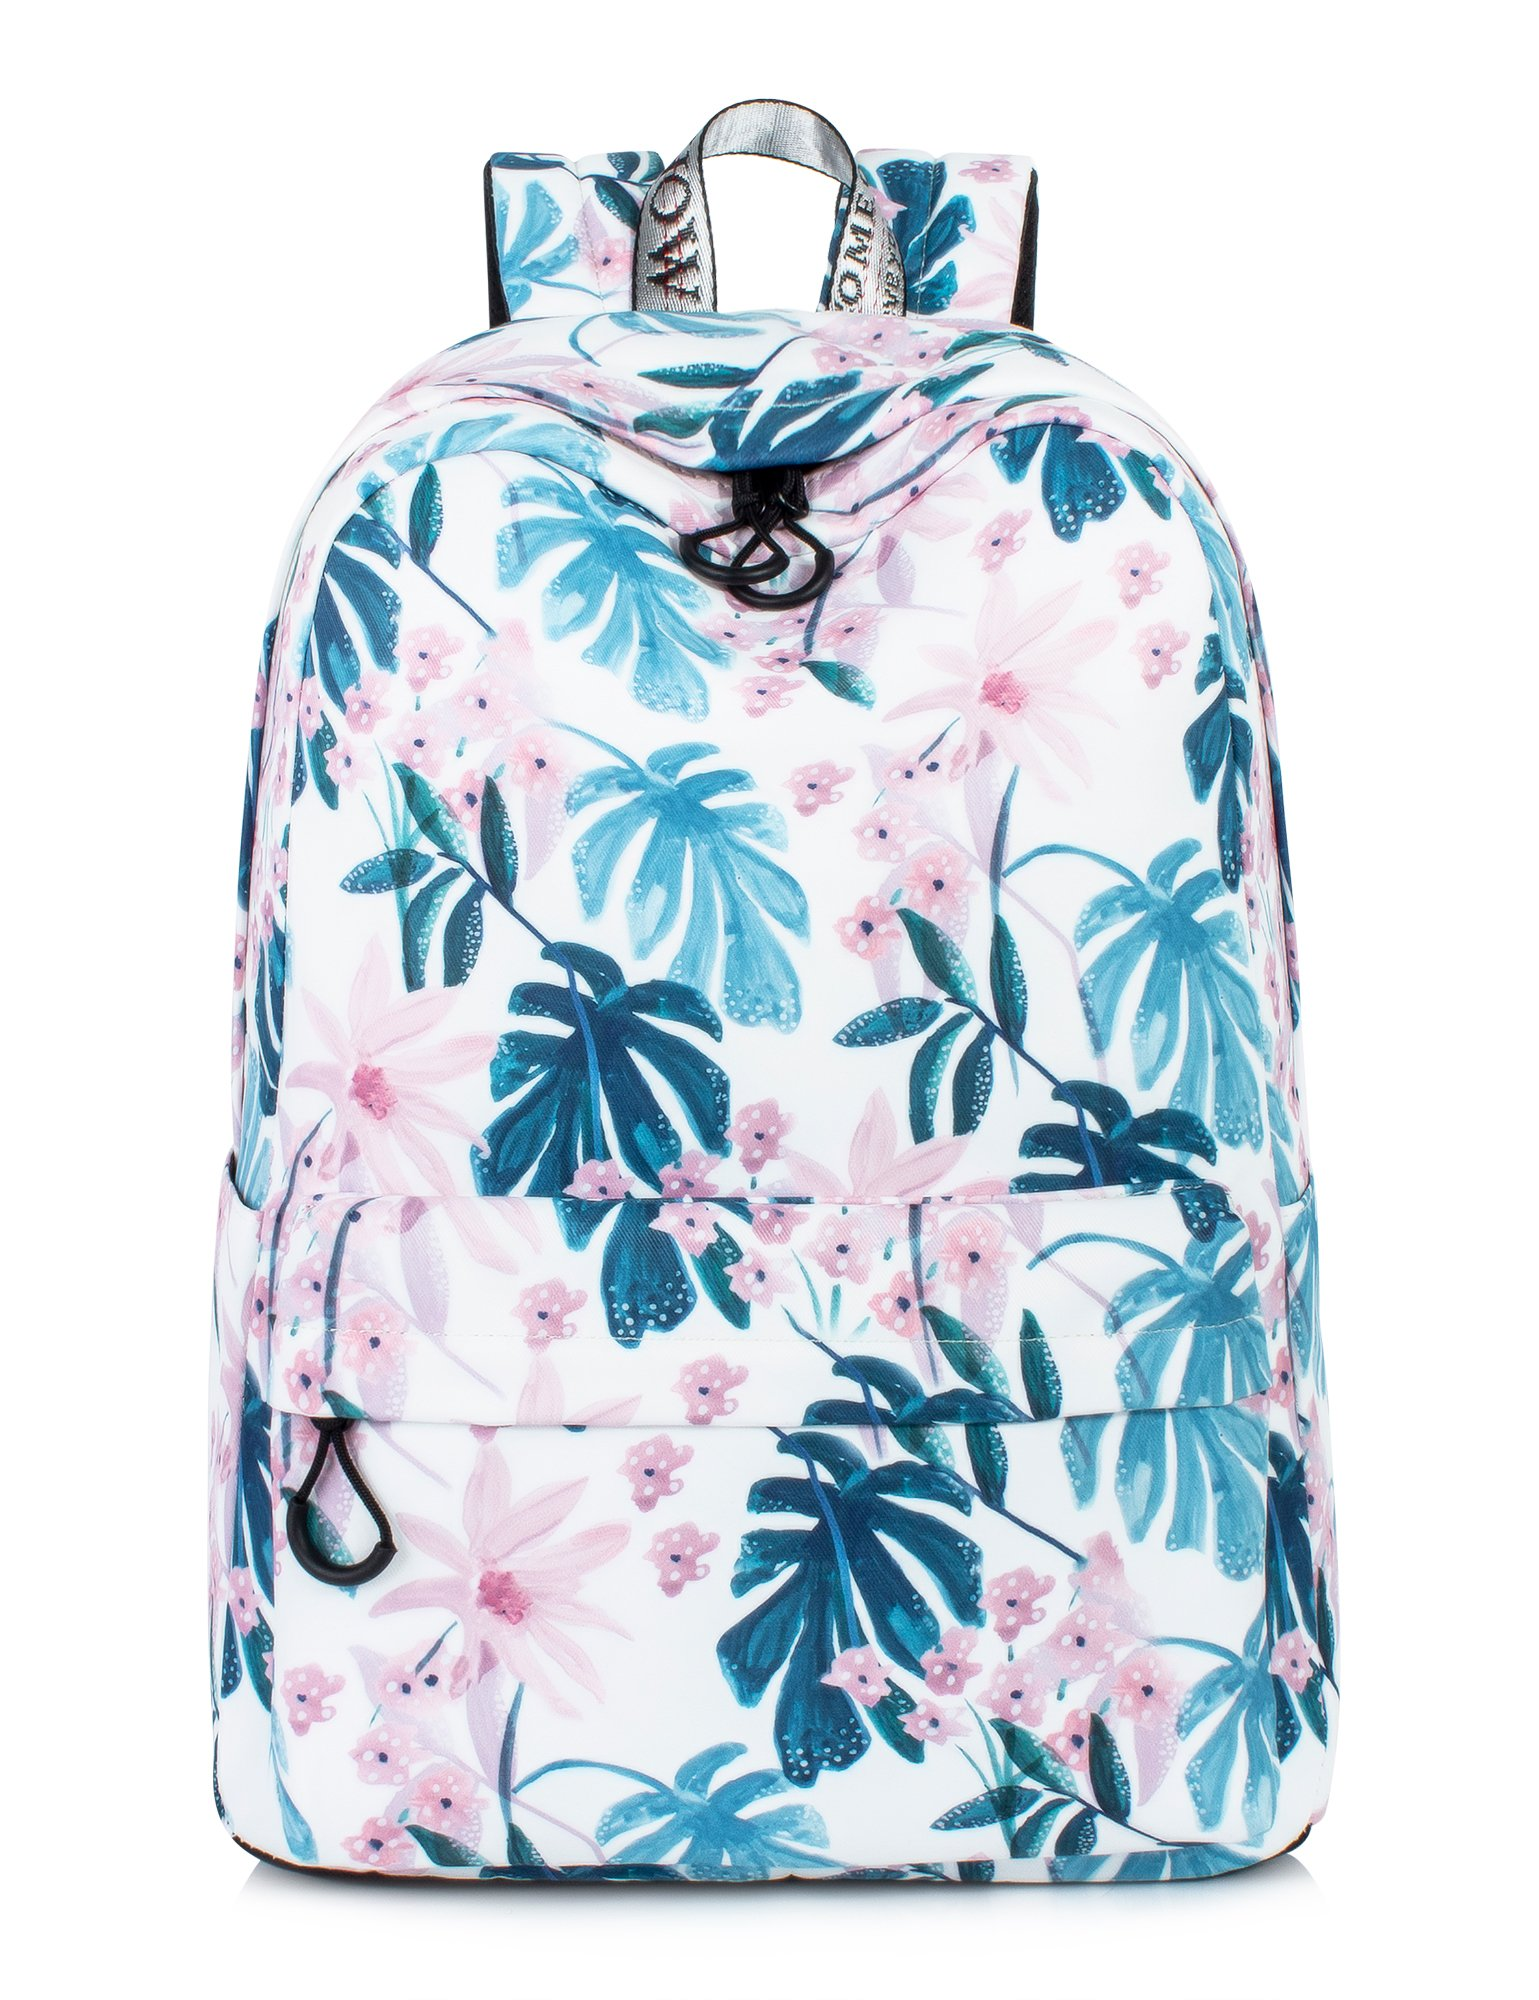 Leaper Floral Laptop Backpack Ink Painting School Bookbags for Girls Large College Bags Women Daypack (Floral-Ink Painting)